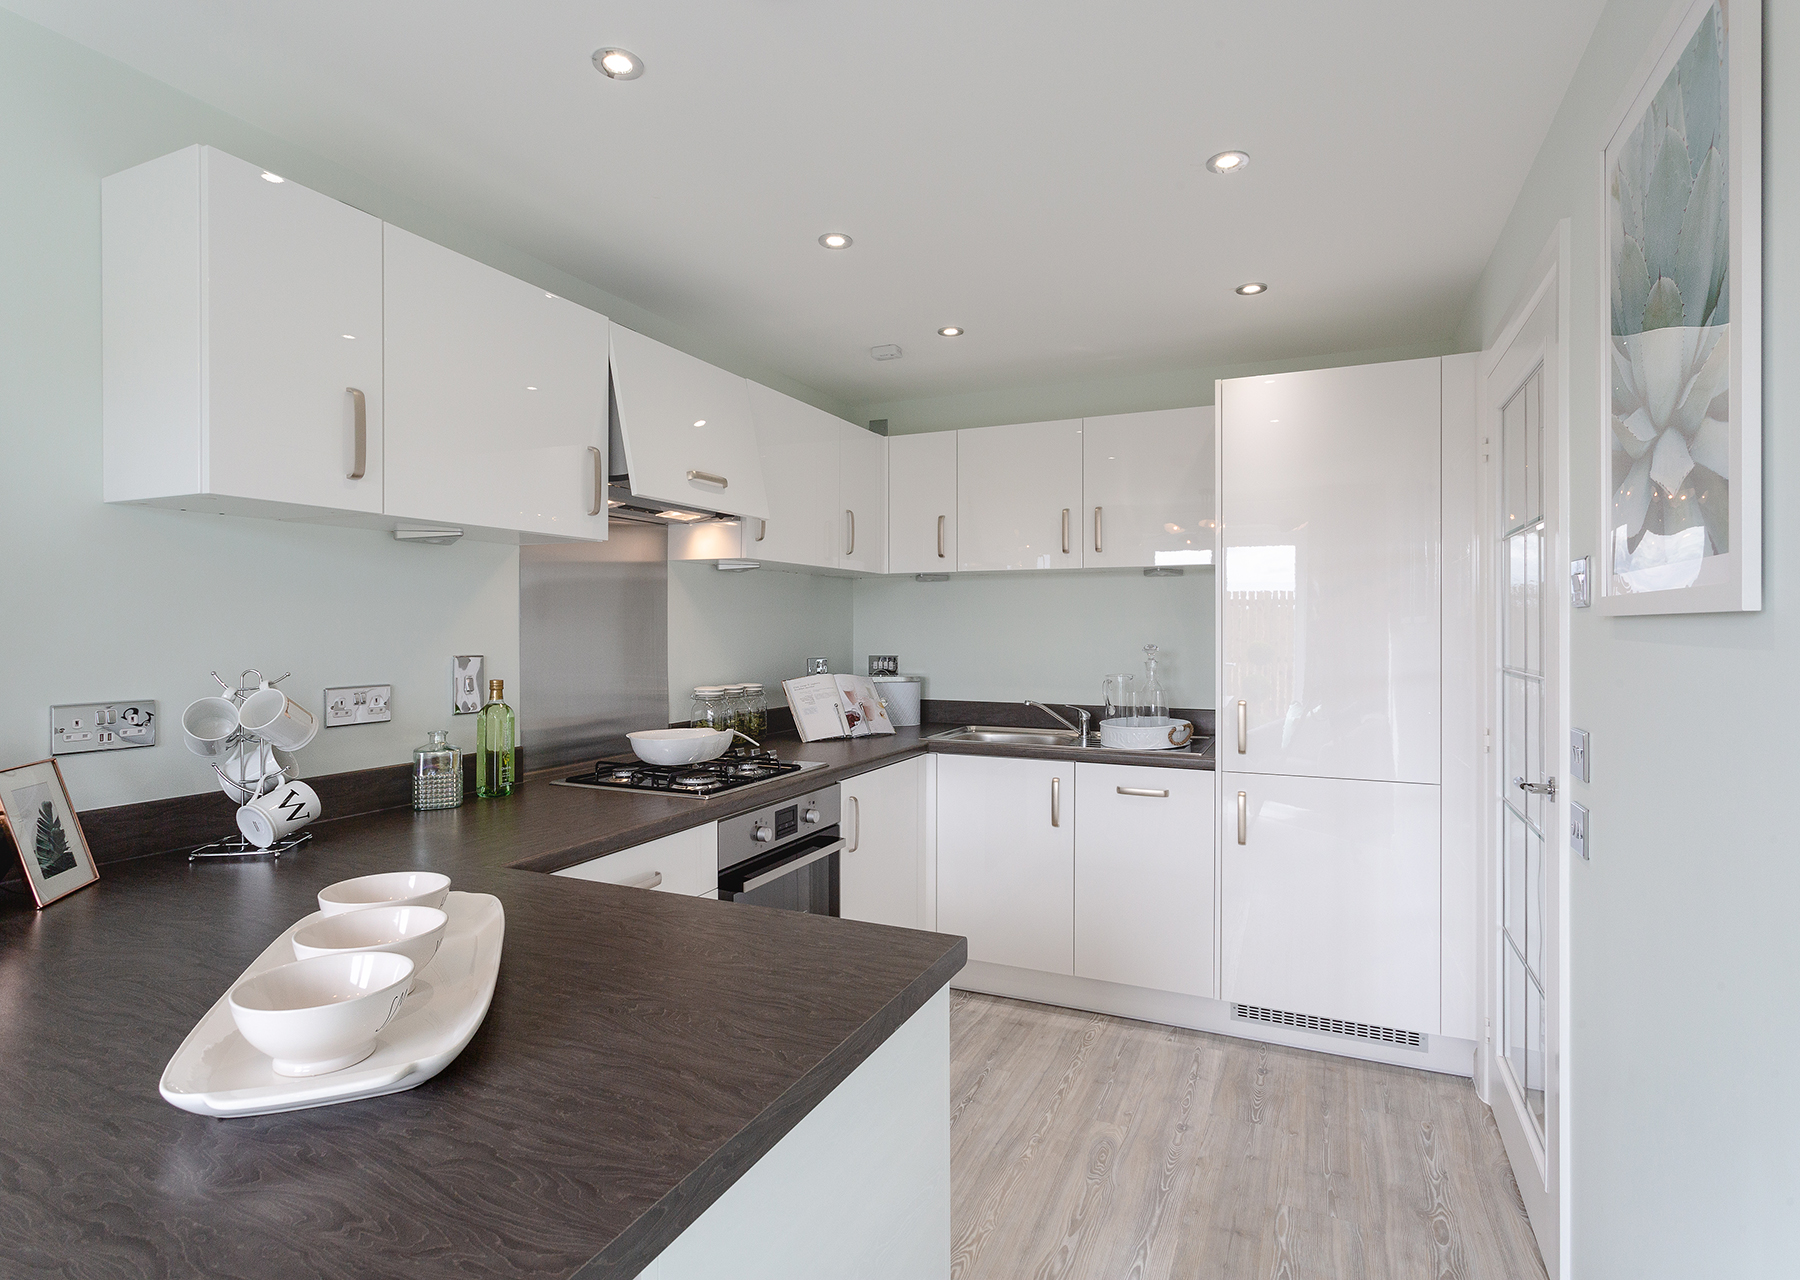 TWEs_Meadowlands_Fairbairn_Kitchen_1800x1280